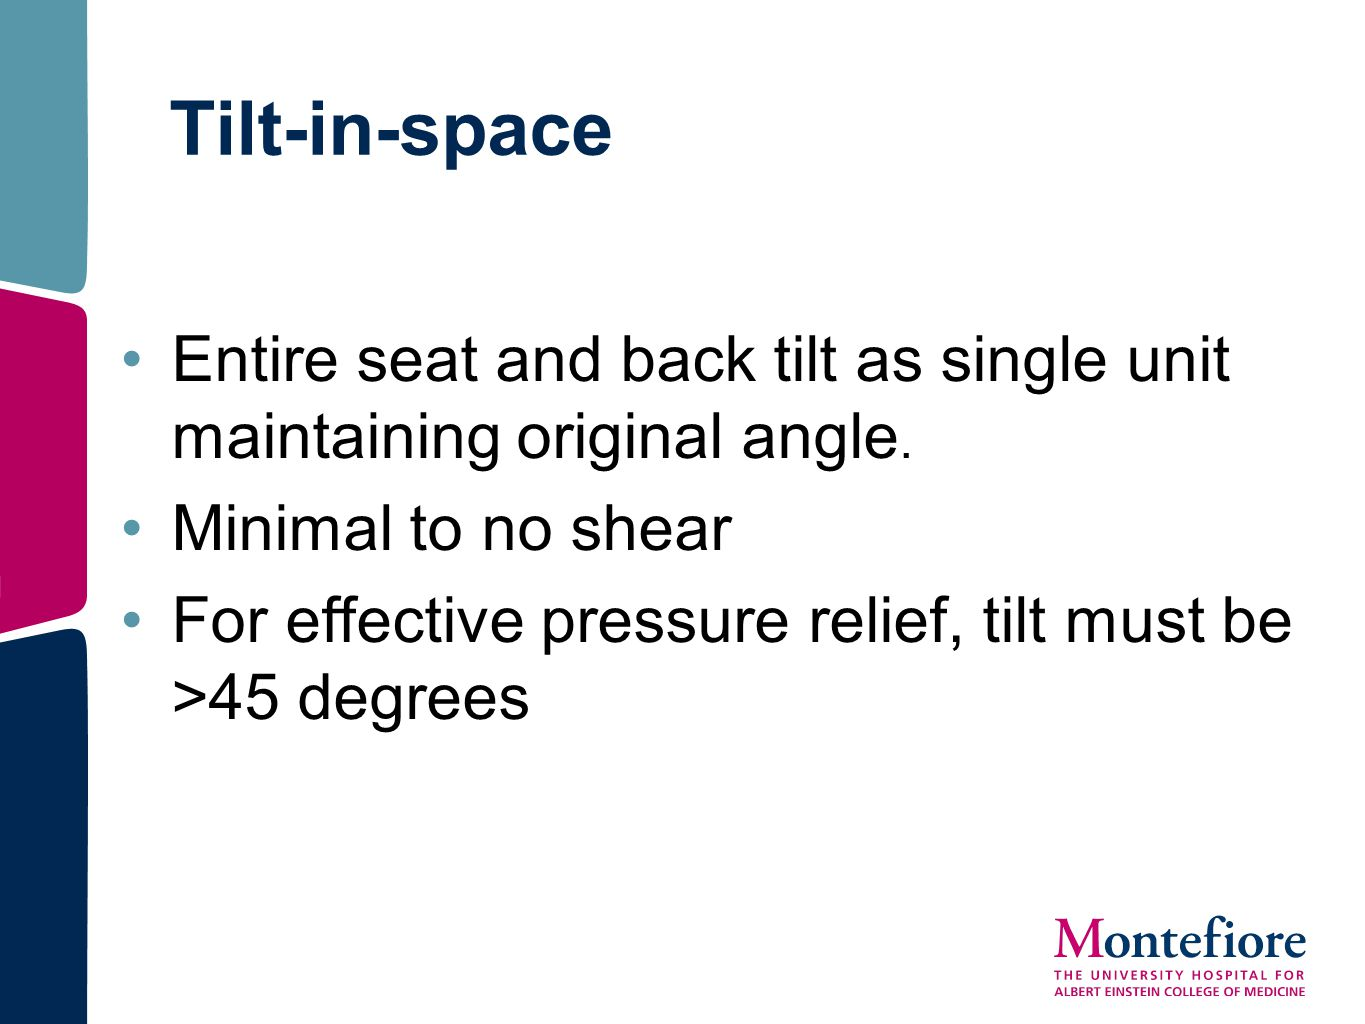 Tilt-in-space Entire seat and back tilt as single unit maintaining original angle. Minimal to no shear For effective pressure relief, tilt must be >45